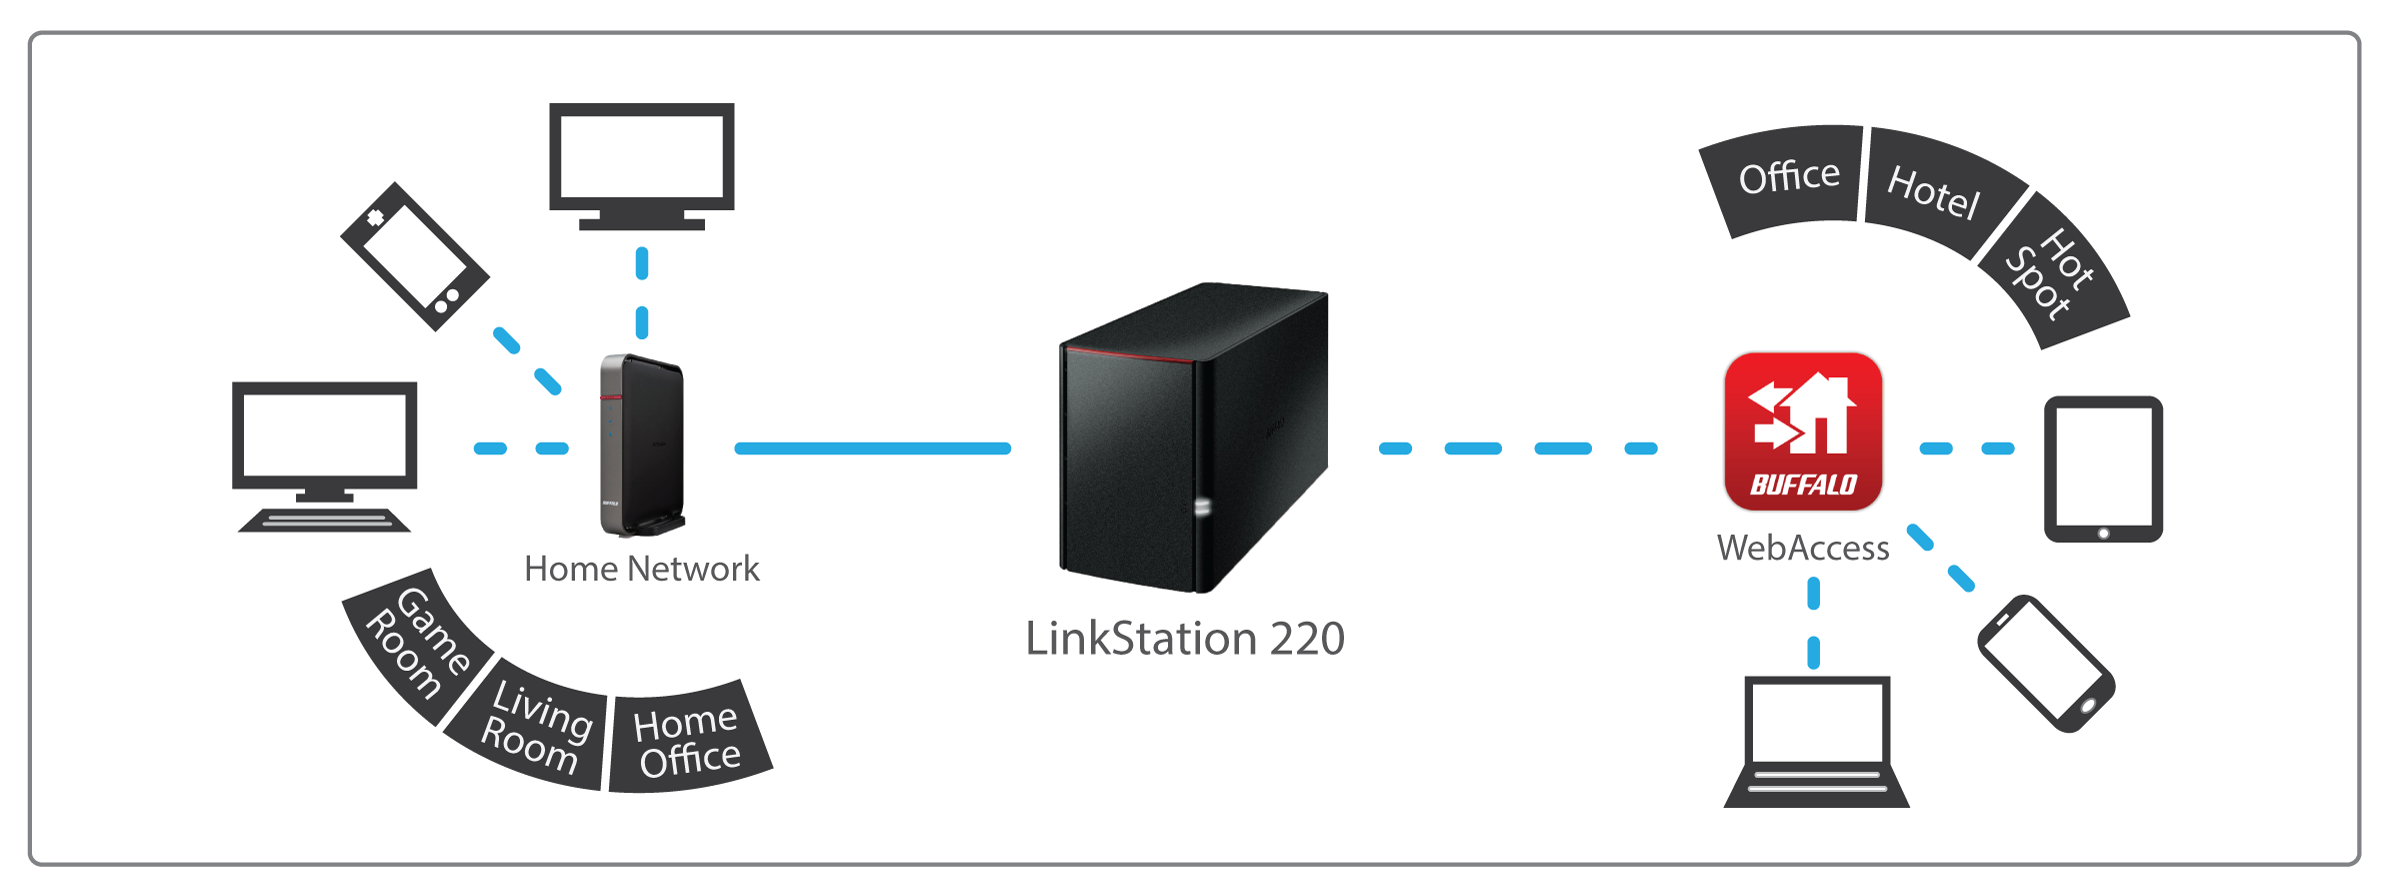 Linkstation 200 Series Buffalo Americas Wireless Home Network Diagram Simple 220 Centralized Storage